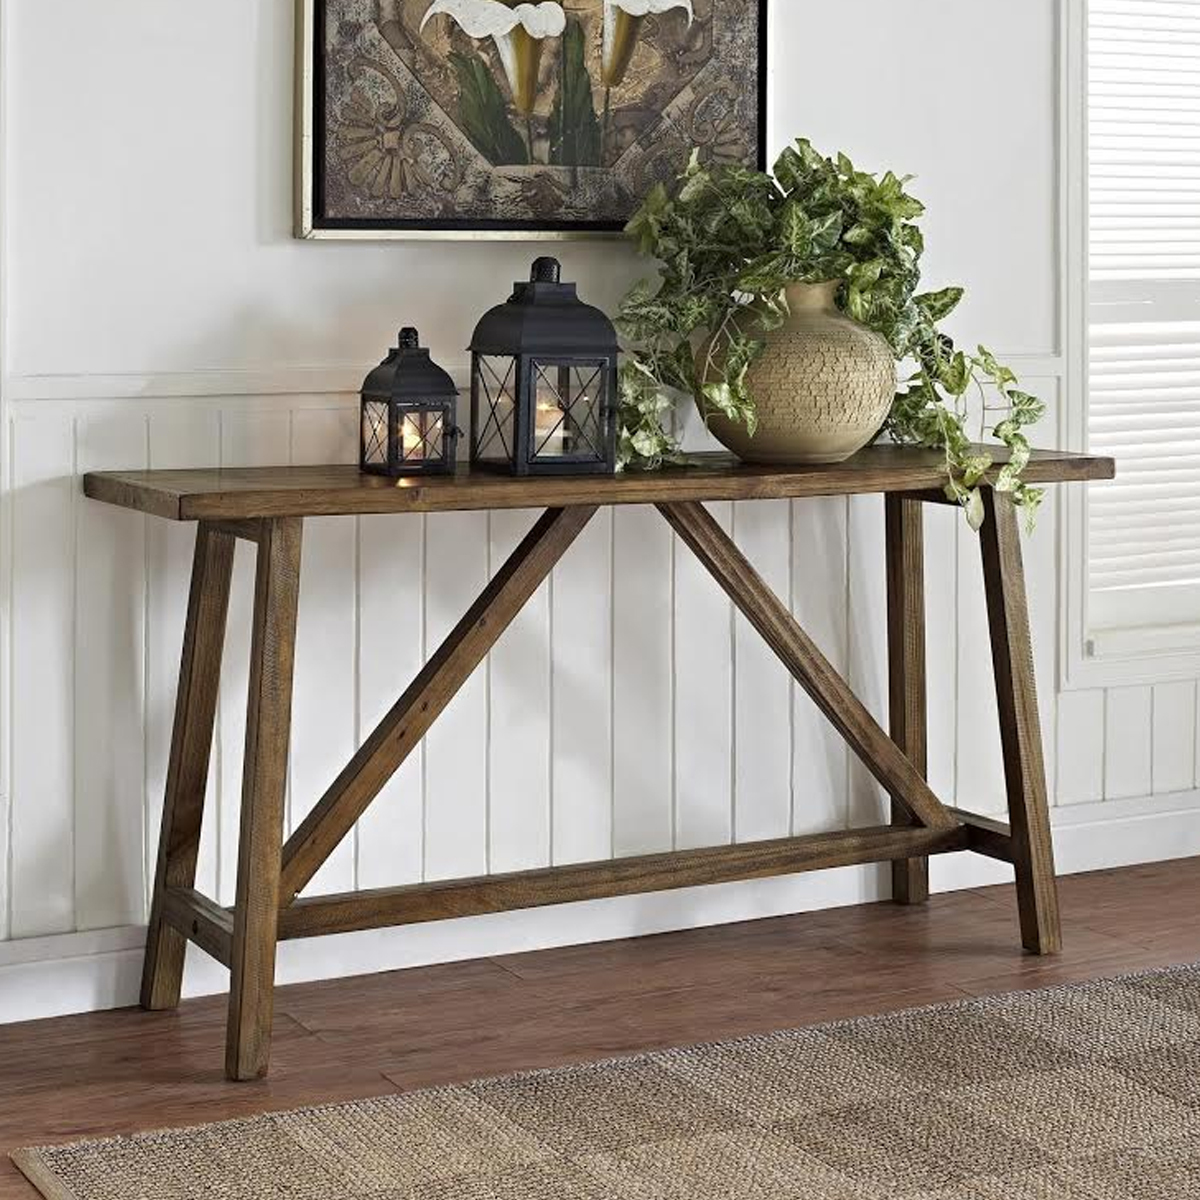 rustic done right farmhouse furniture loving better homes and gardens accent table gray wood console high end best home decor ping websites garden bathroom basin counter height